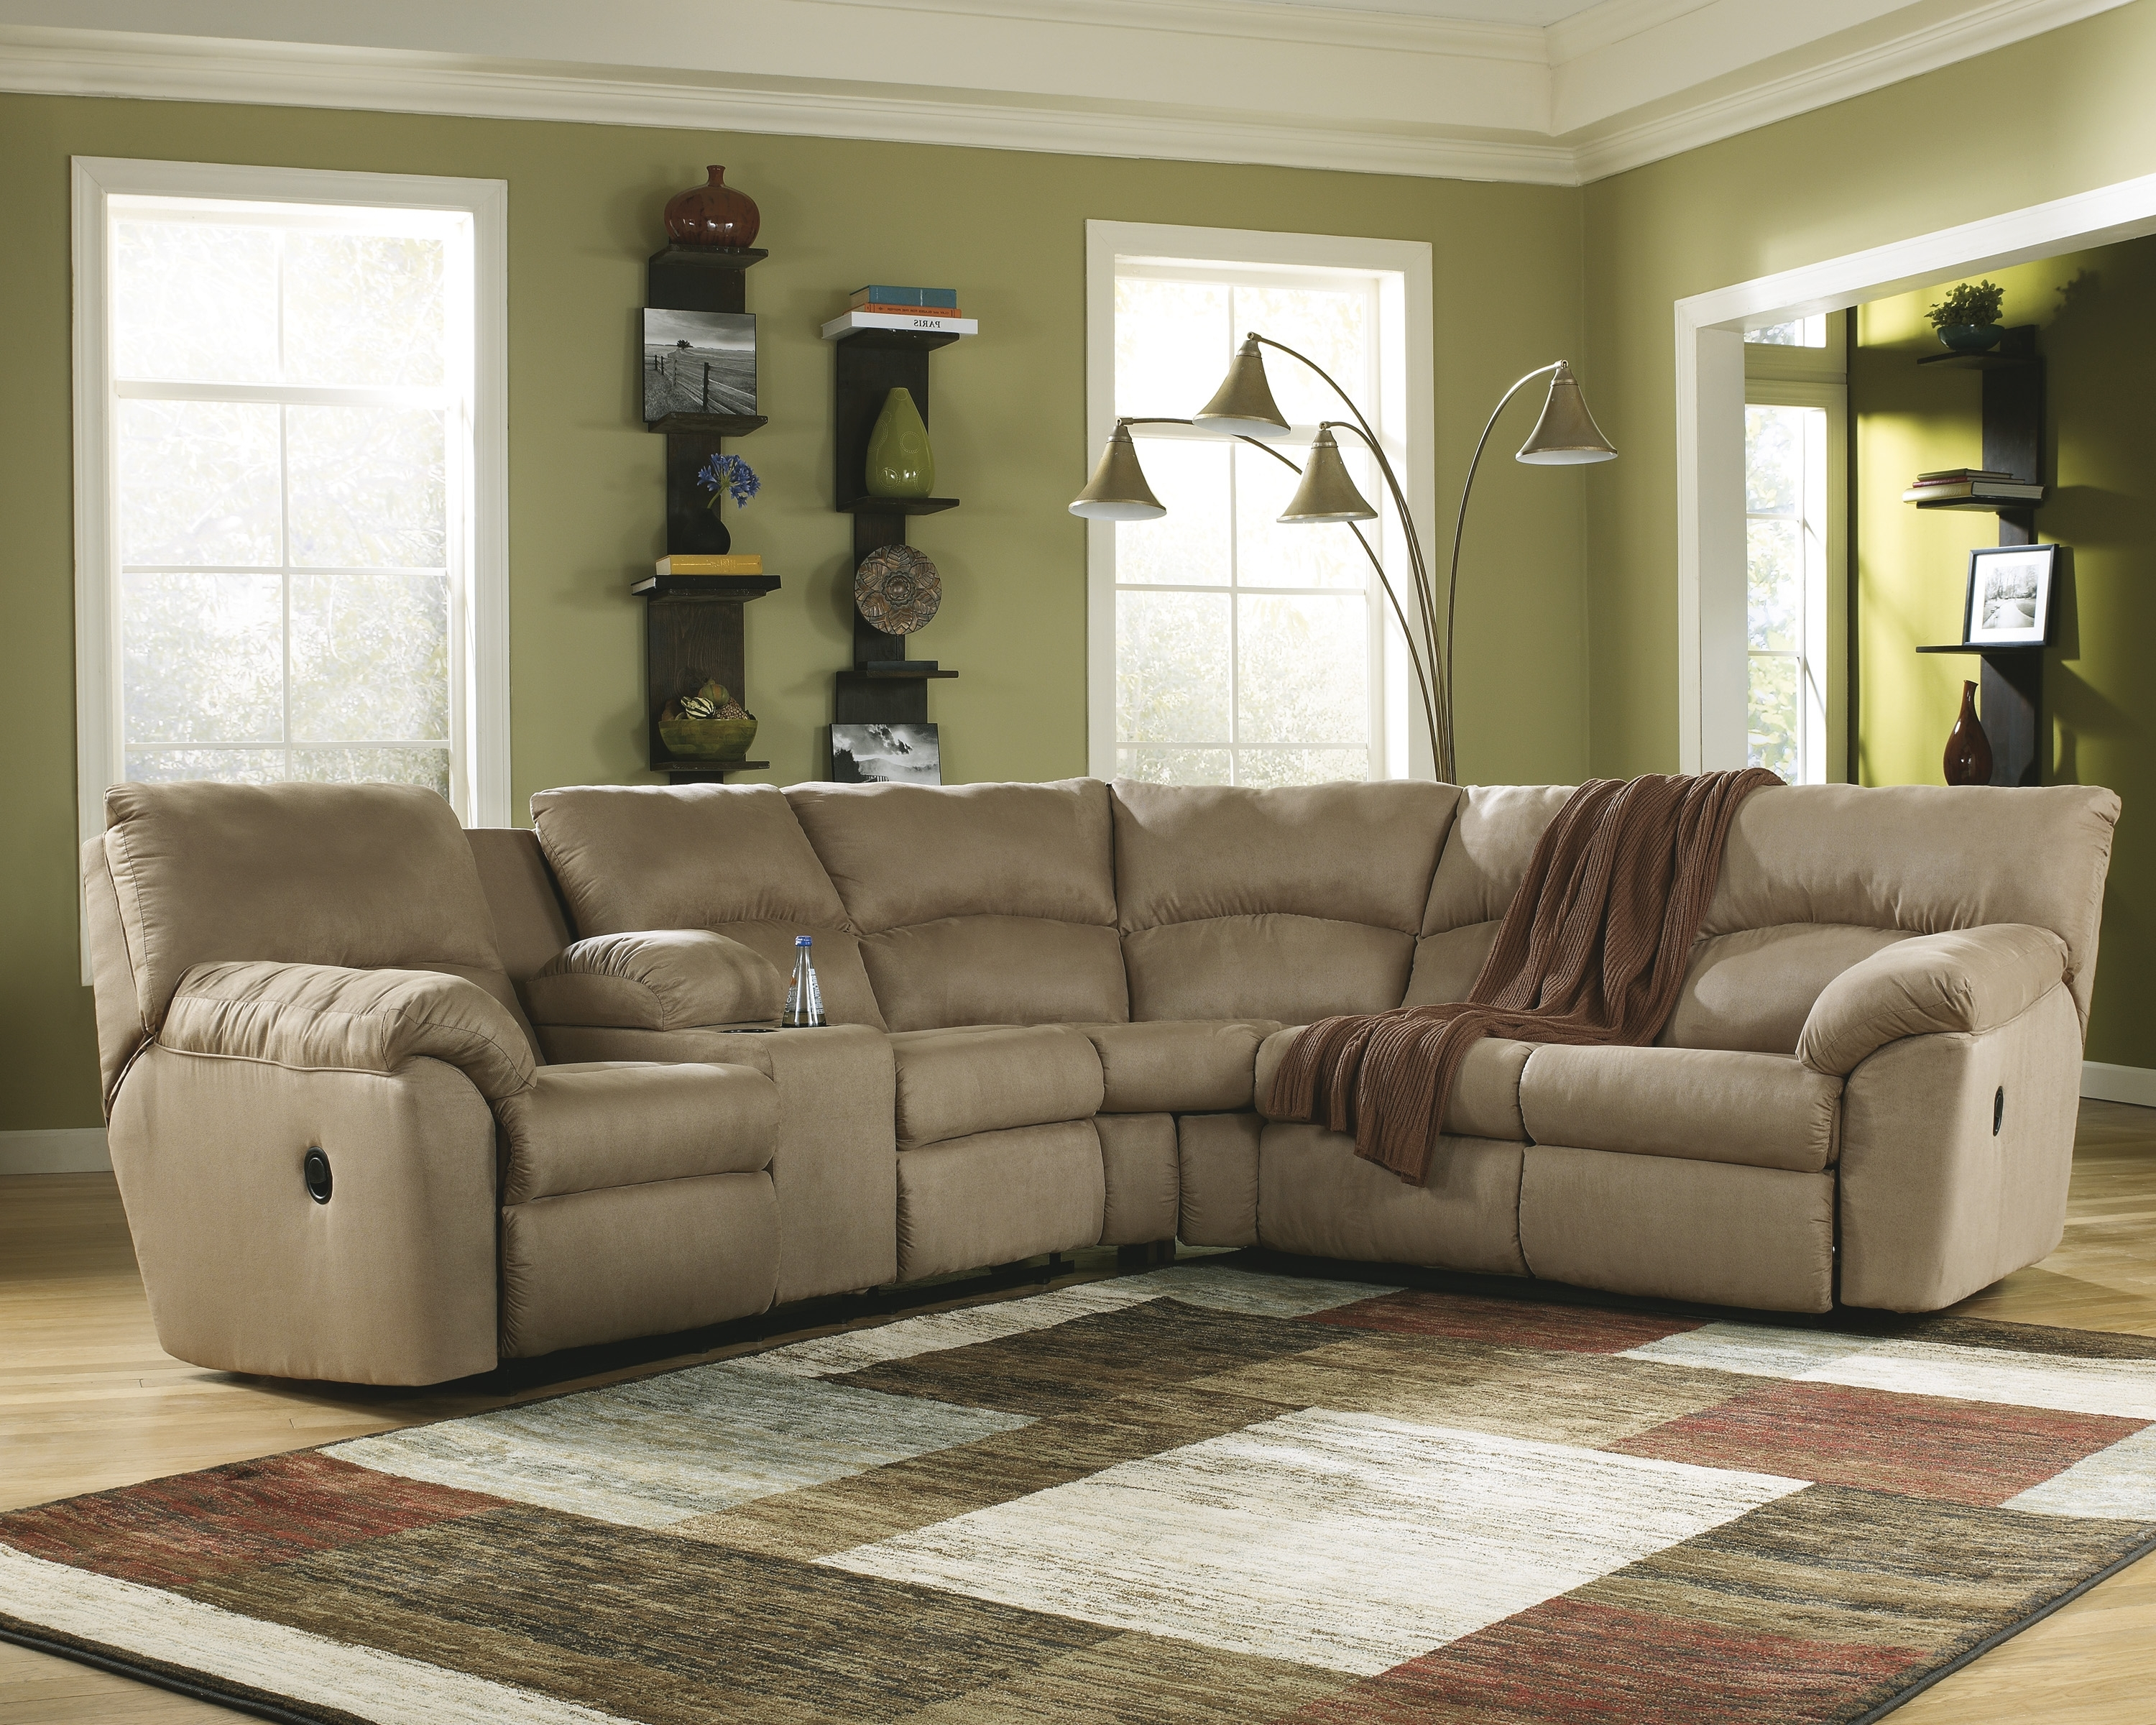 Excellent Ideas Easy Home Furniture Rental Tarlac Edmonton Wichita With Regard To Well Liked Wichita Ks Sectional Sofas (View 11 of 15)